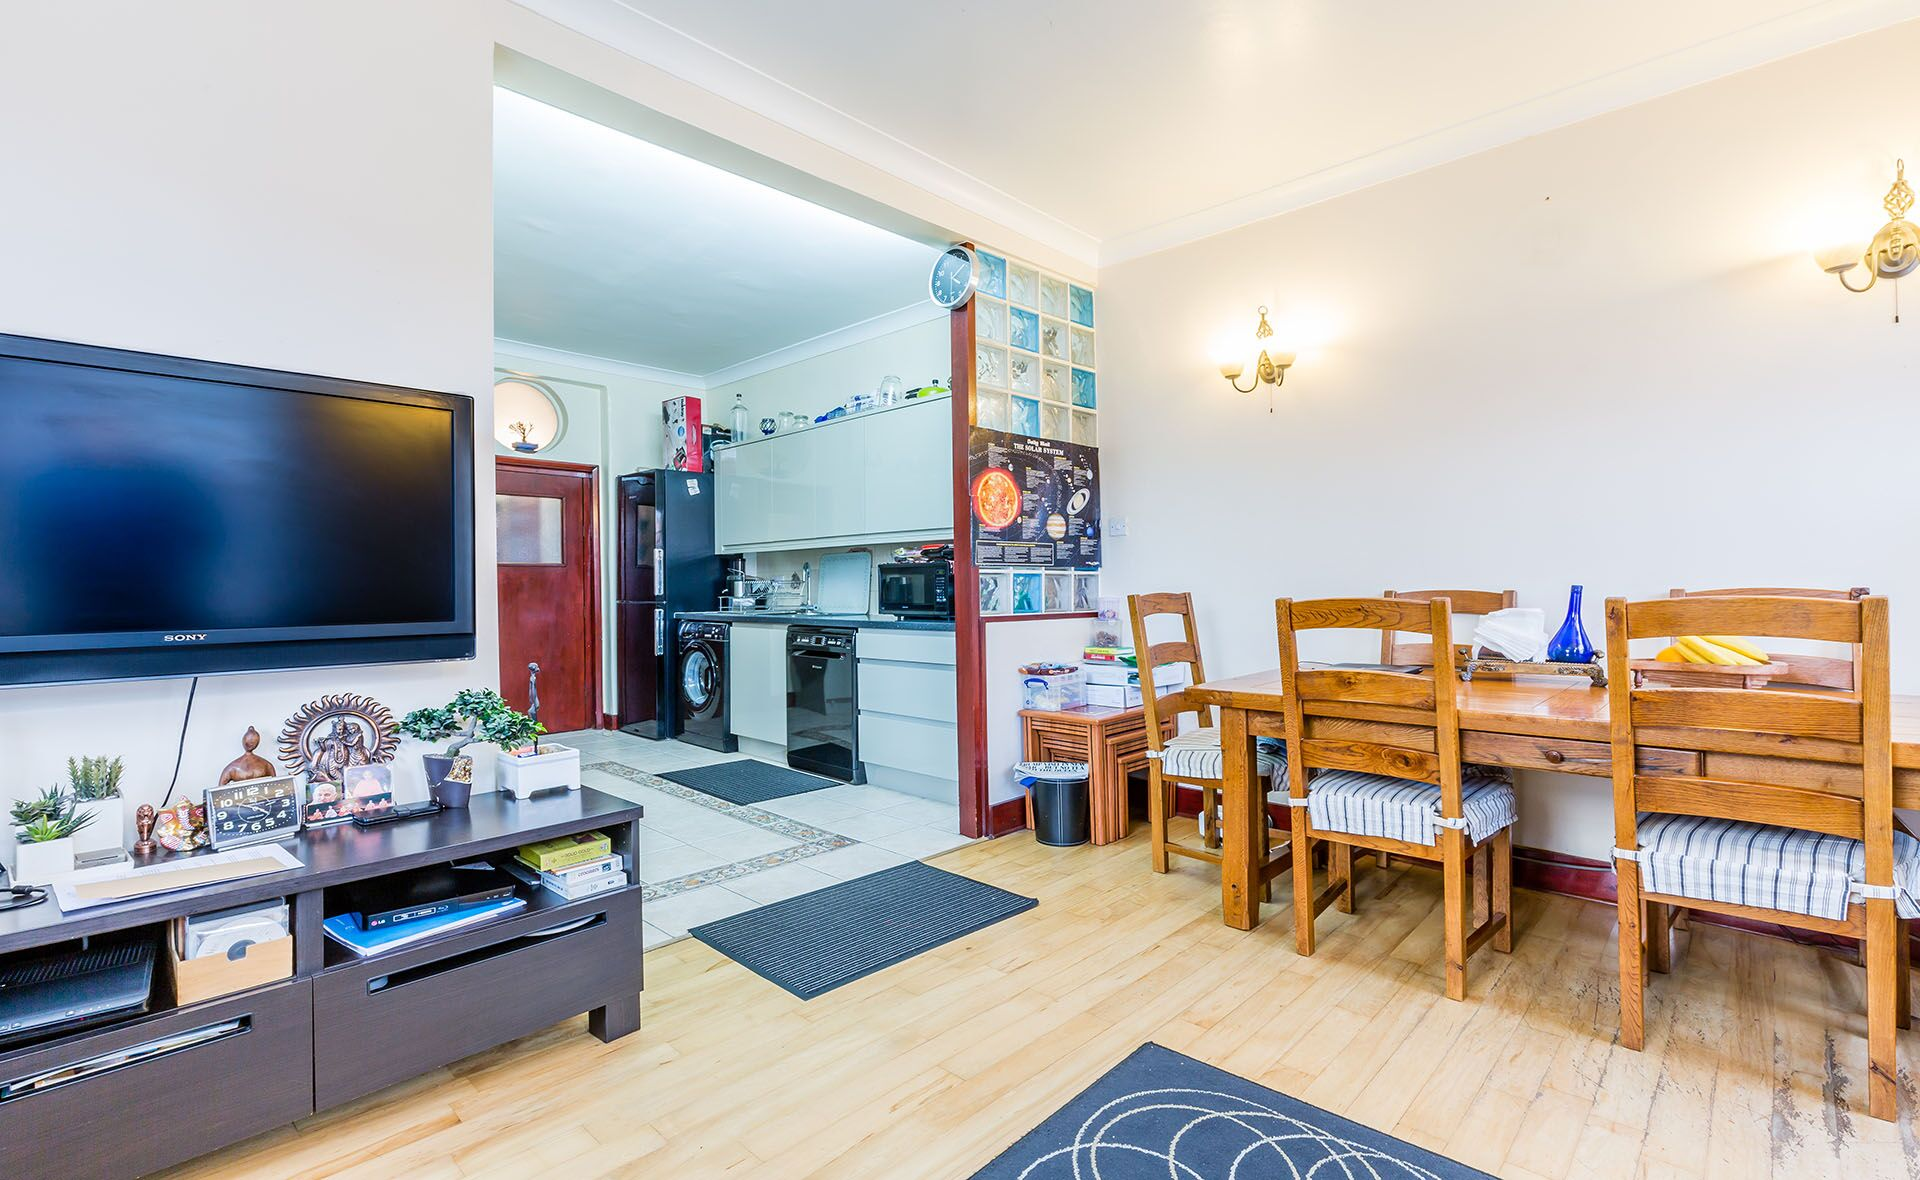 3 Bedroom House for Sale in Camden Town, London, NW1